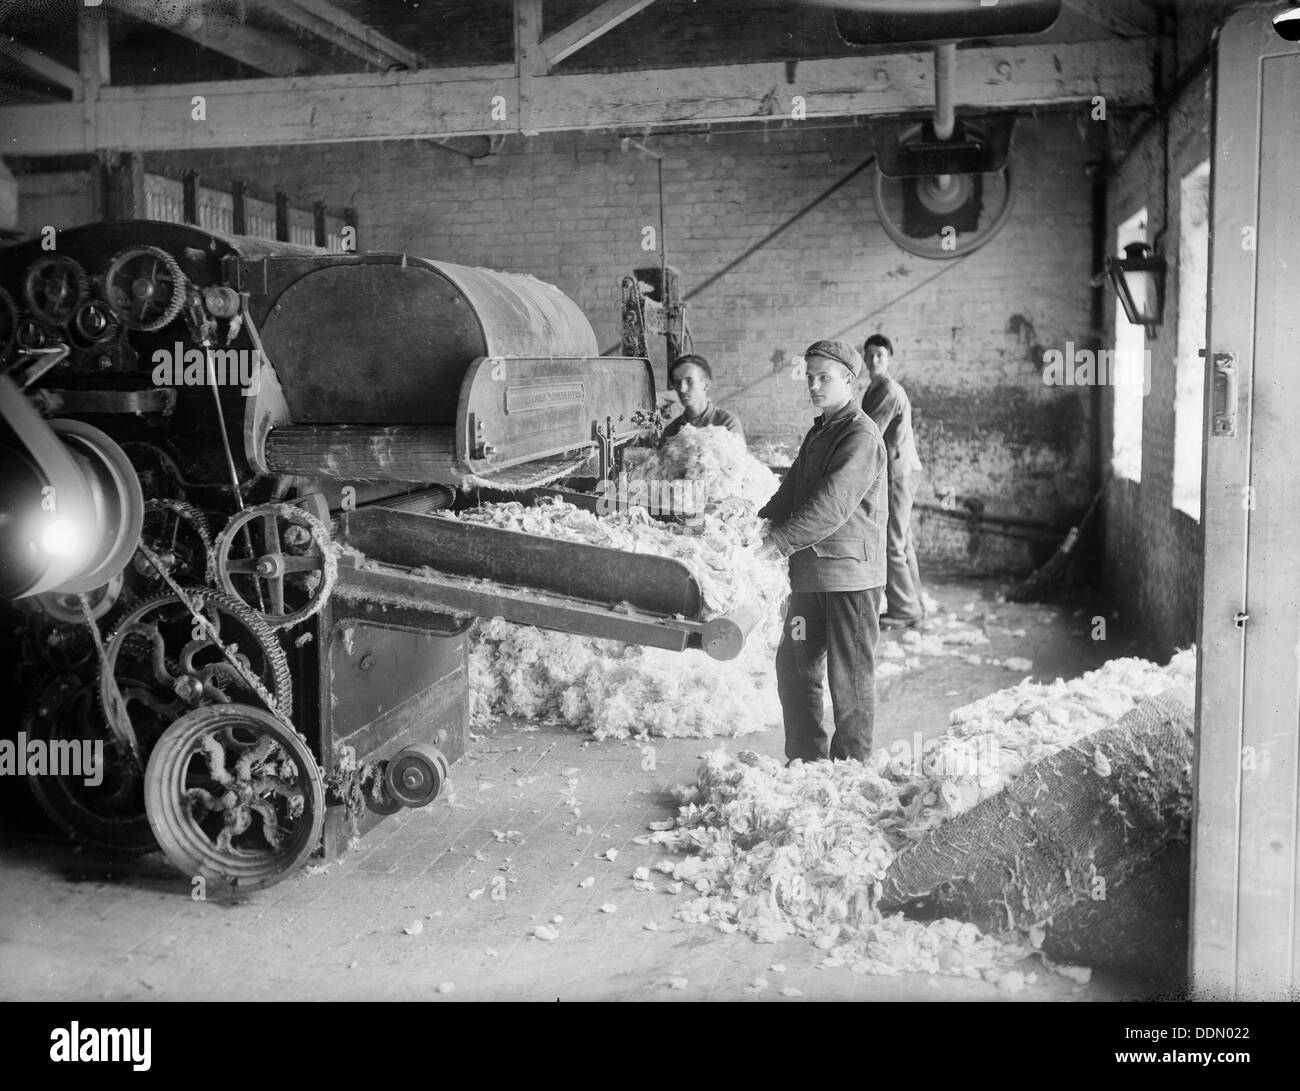 Workers at Earley's Blanket Factory, Witney, Oxfordshire, c1860-c1922. Artist: Henry Taunt - Stock Image